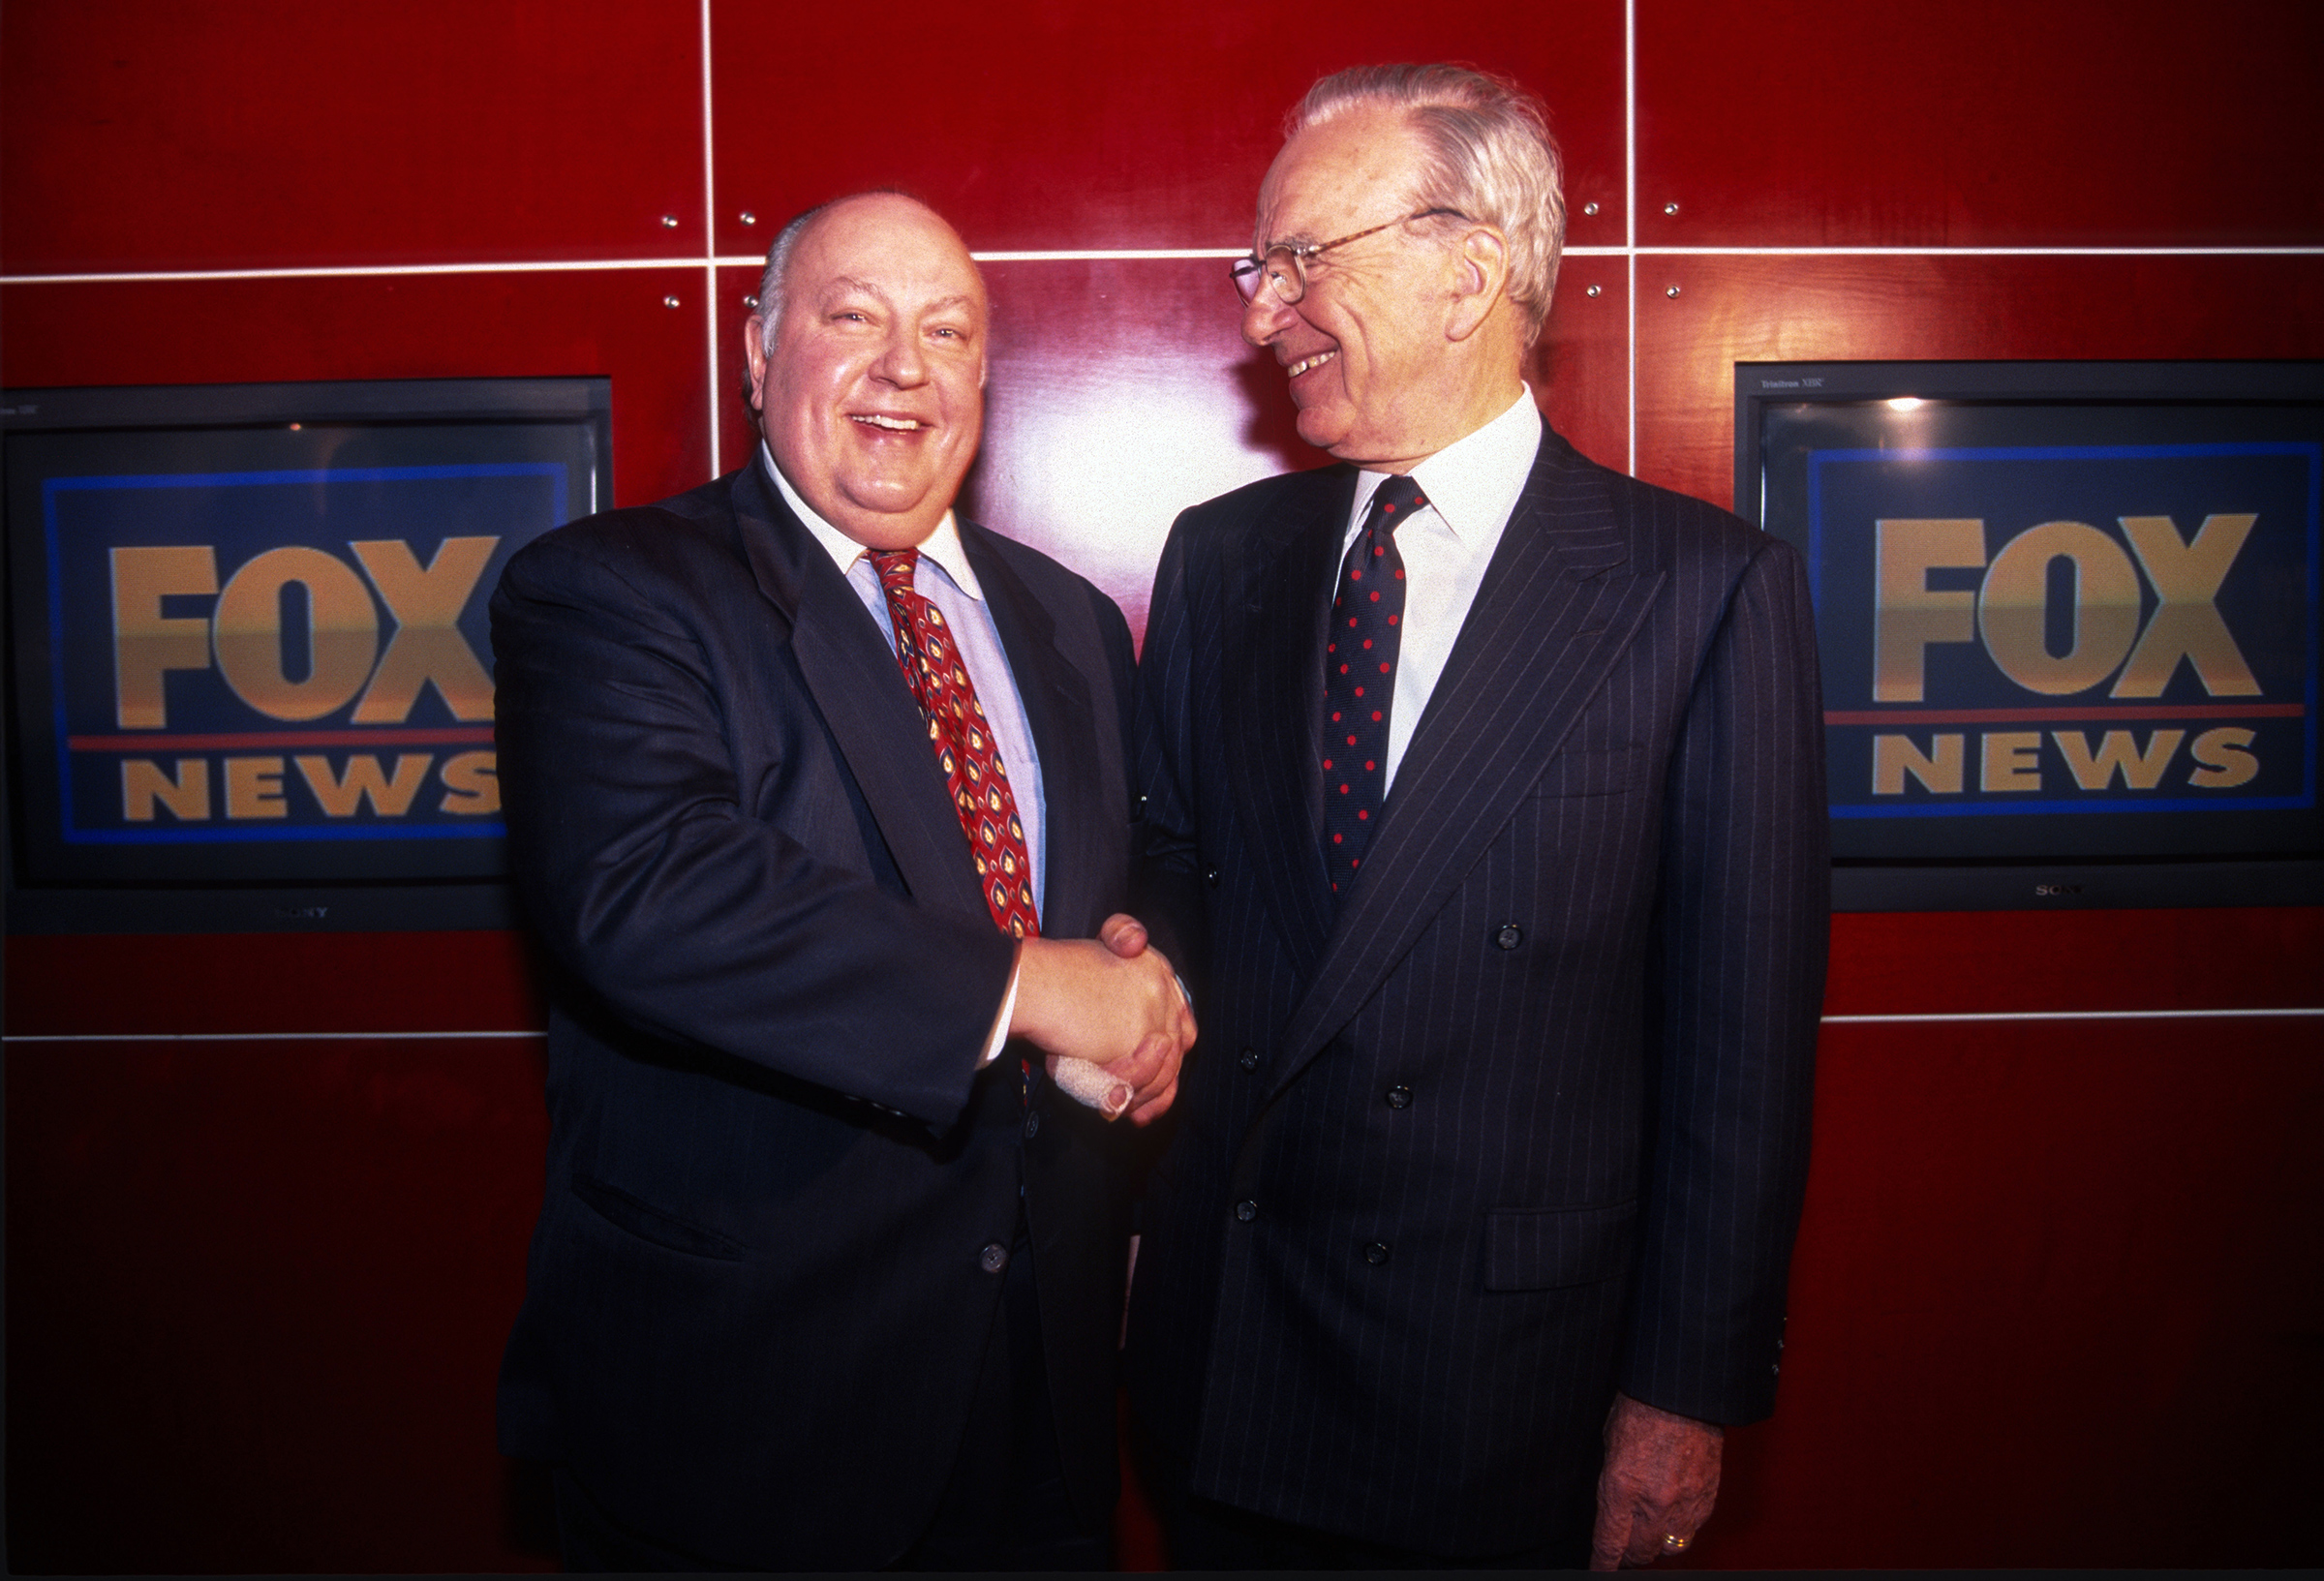 Rupert Murdoch shakes hands with Roger Ailes after naming Ailes the head of Fox News in New York City, Jan. 1996